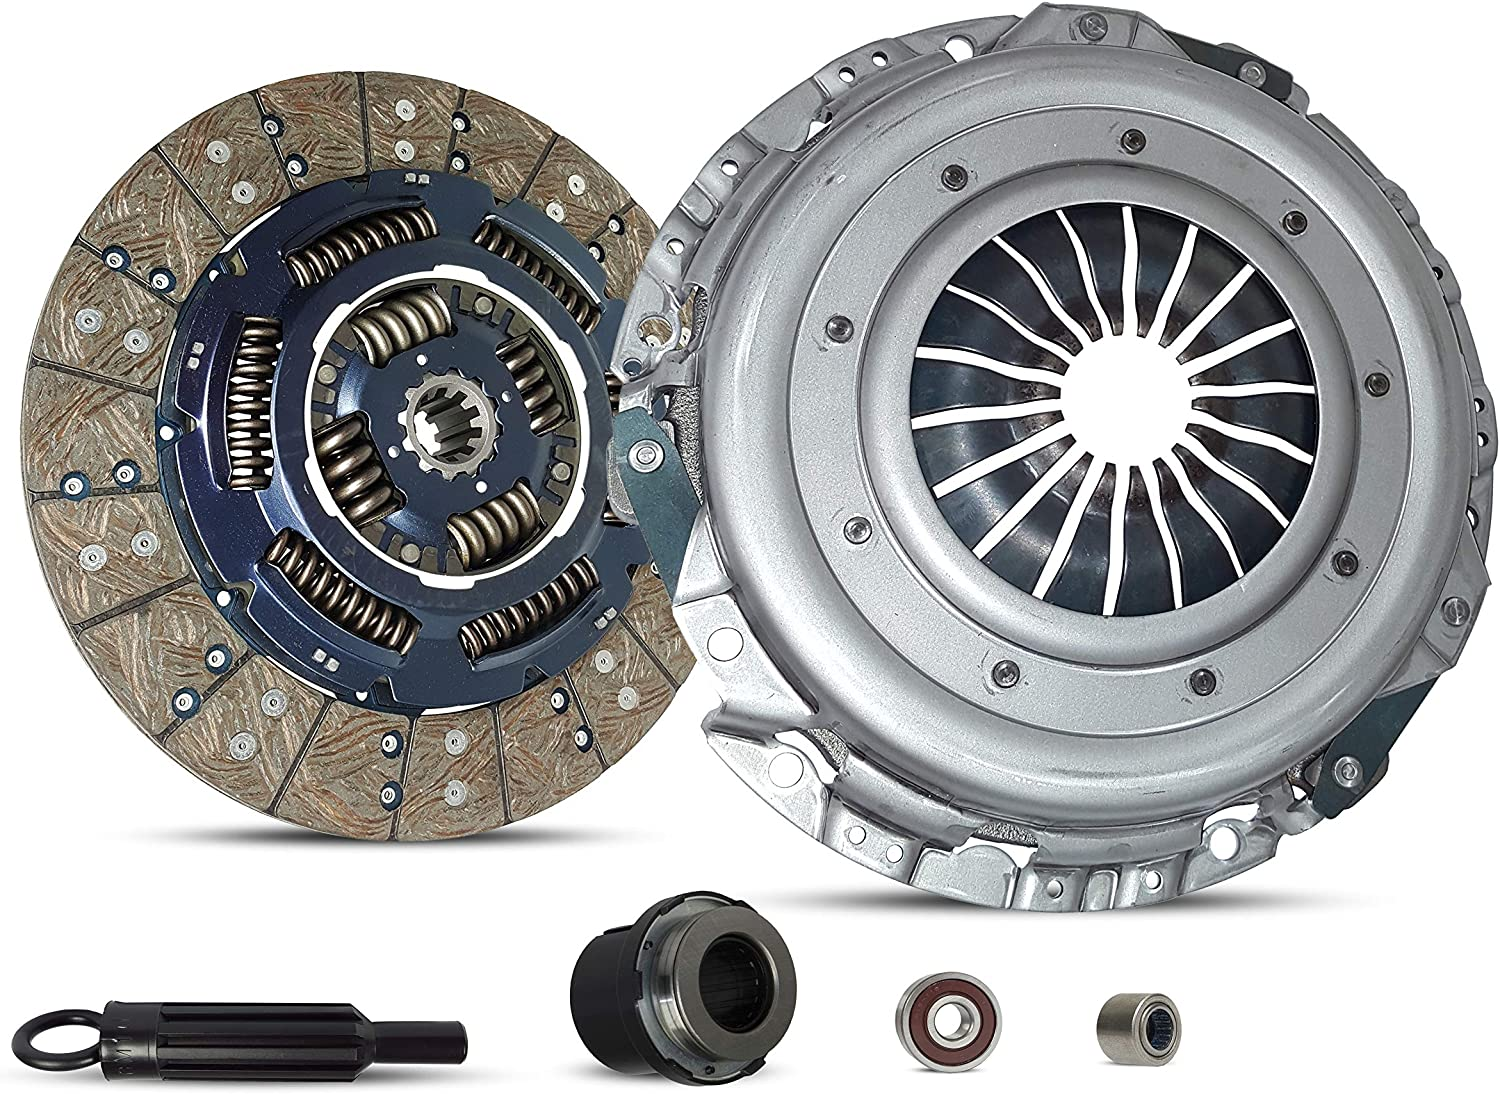 Clutch Disc Stage 1 Clutch Kit Set works with Gmc Sierra Yukon Chevy Tahoe Base LS LT SL SLT SLE Extended Cab Pickup 1999-2000 5.3L 4.8L V8 GAS OHV Naturally Aspirated